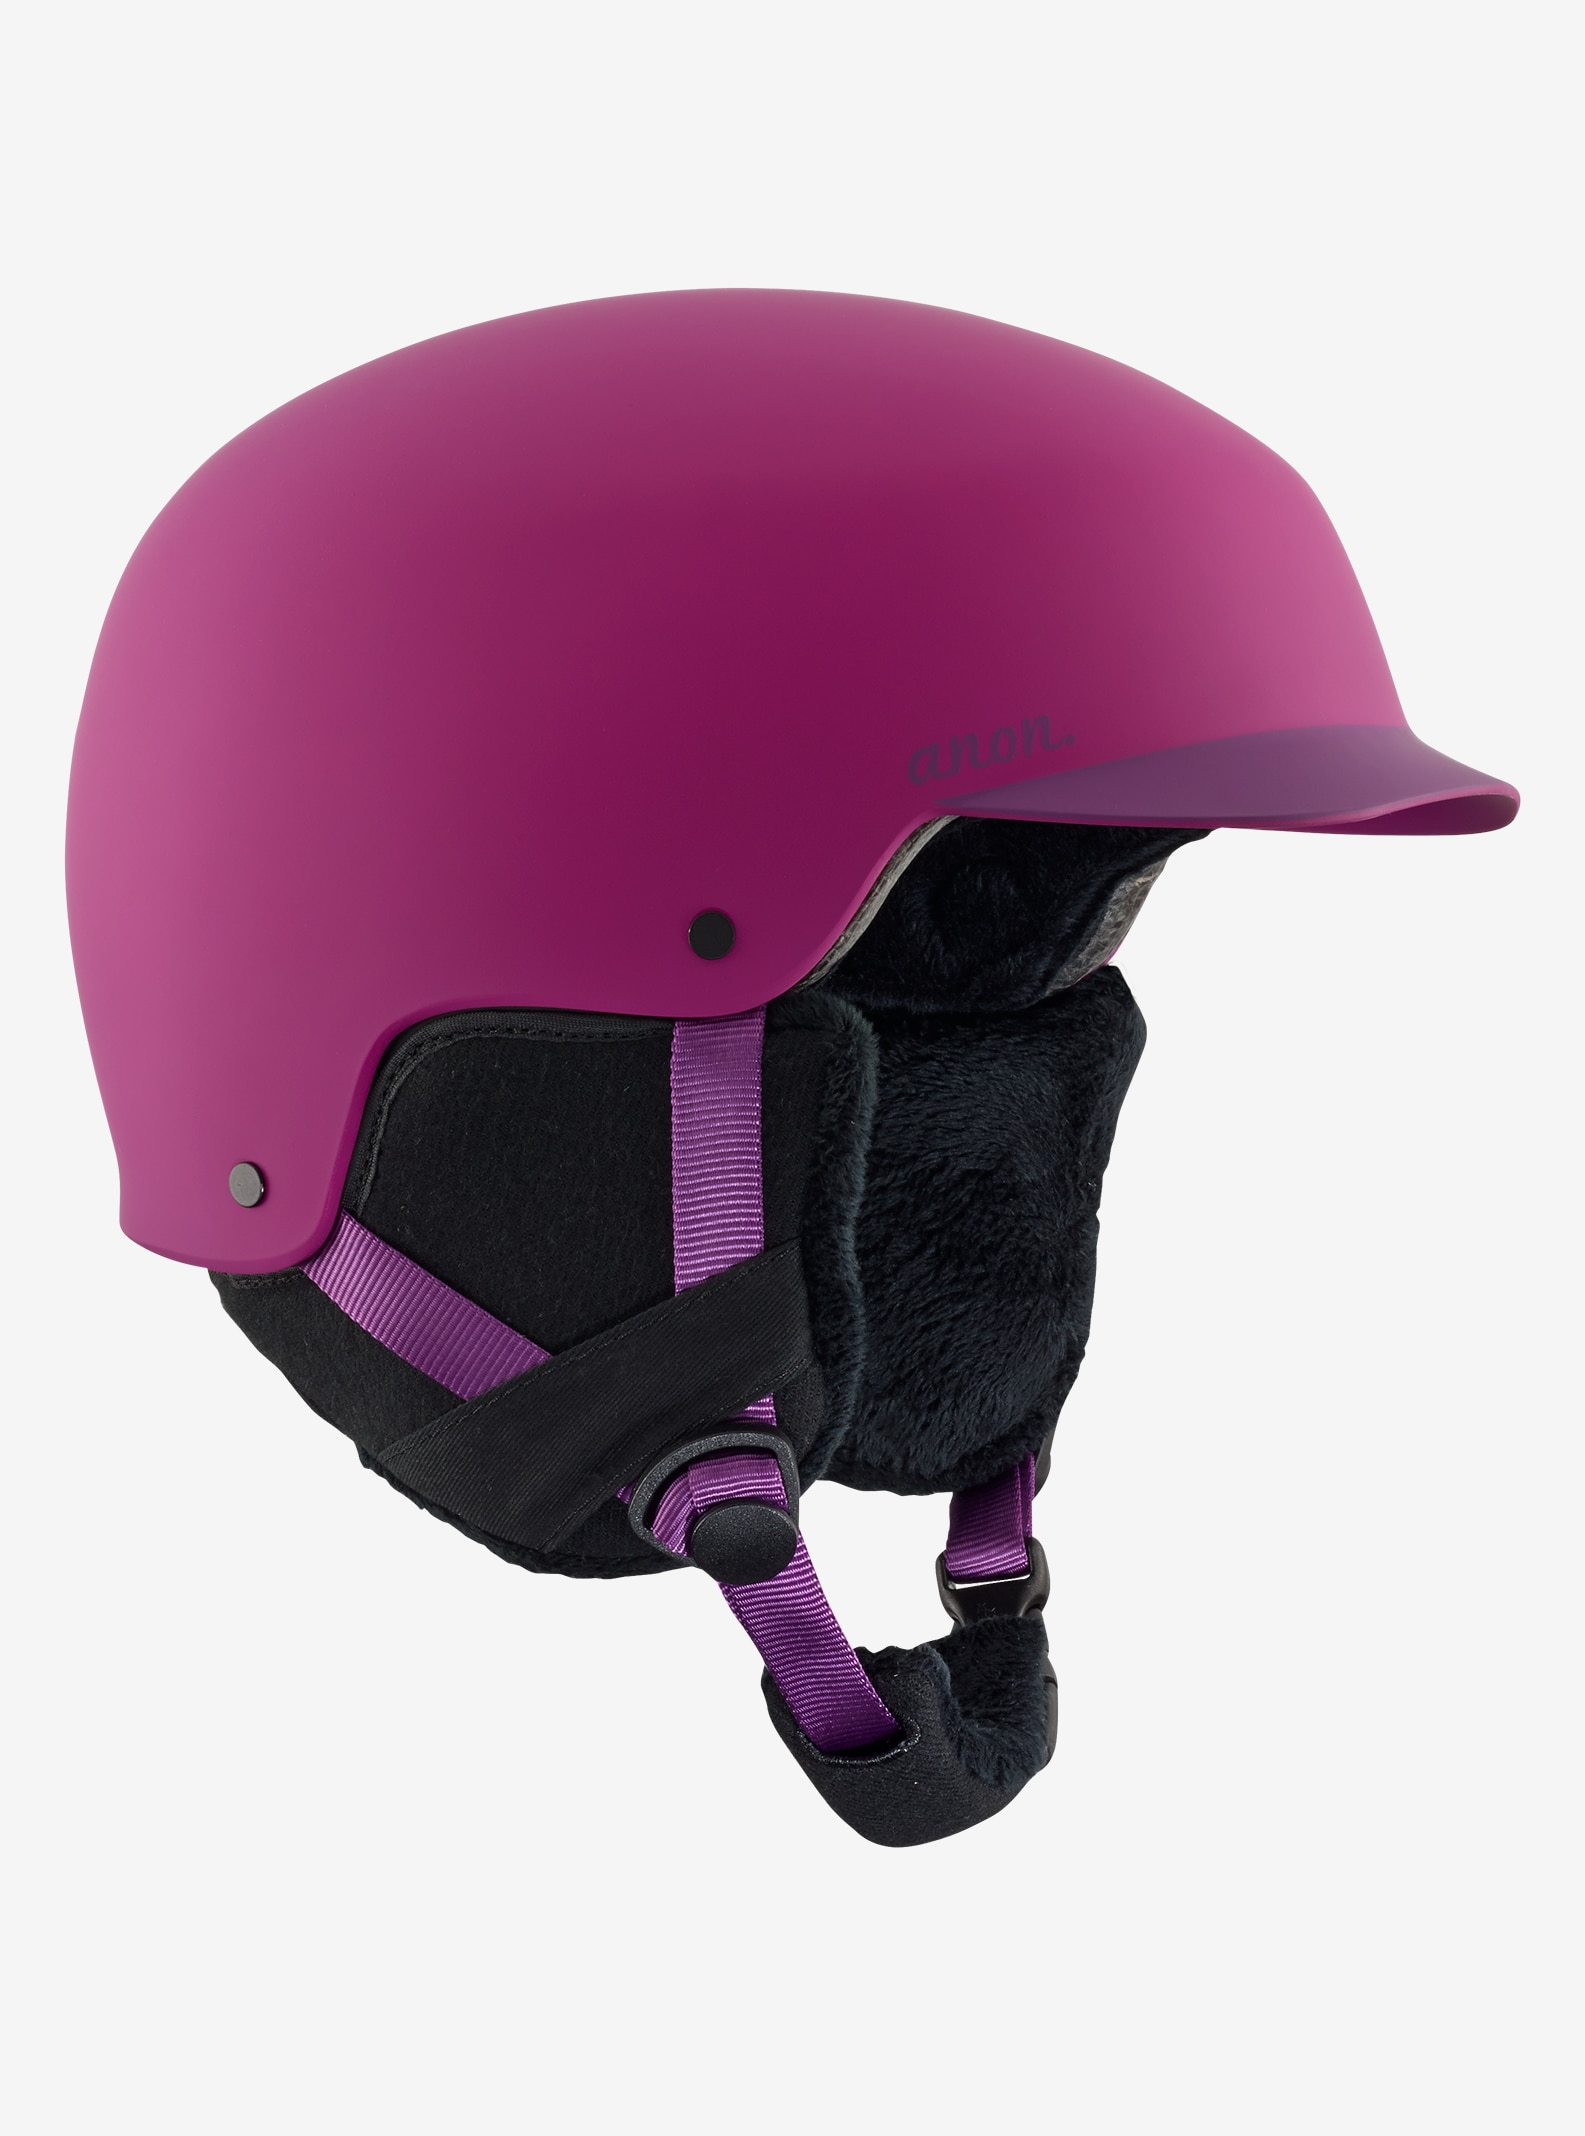 Women's Anon Aera Helmet shown in Purple